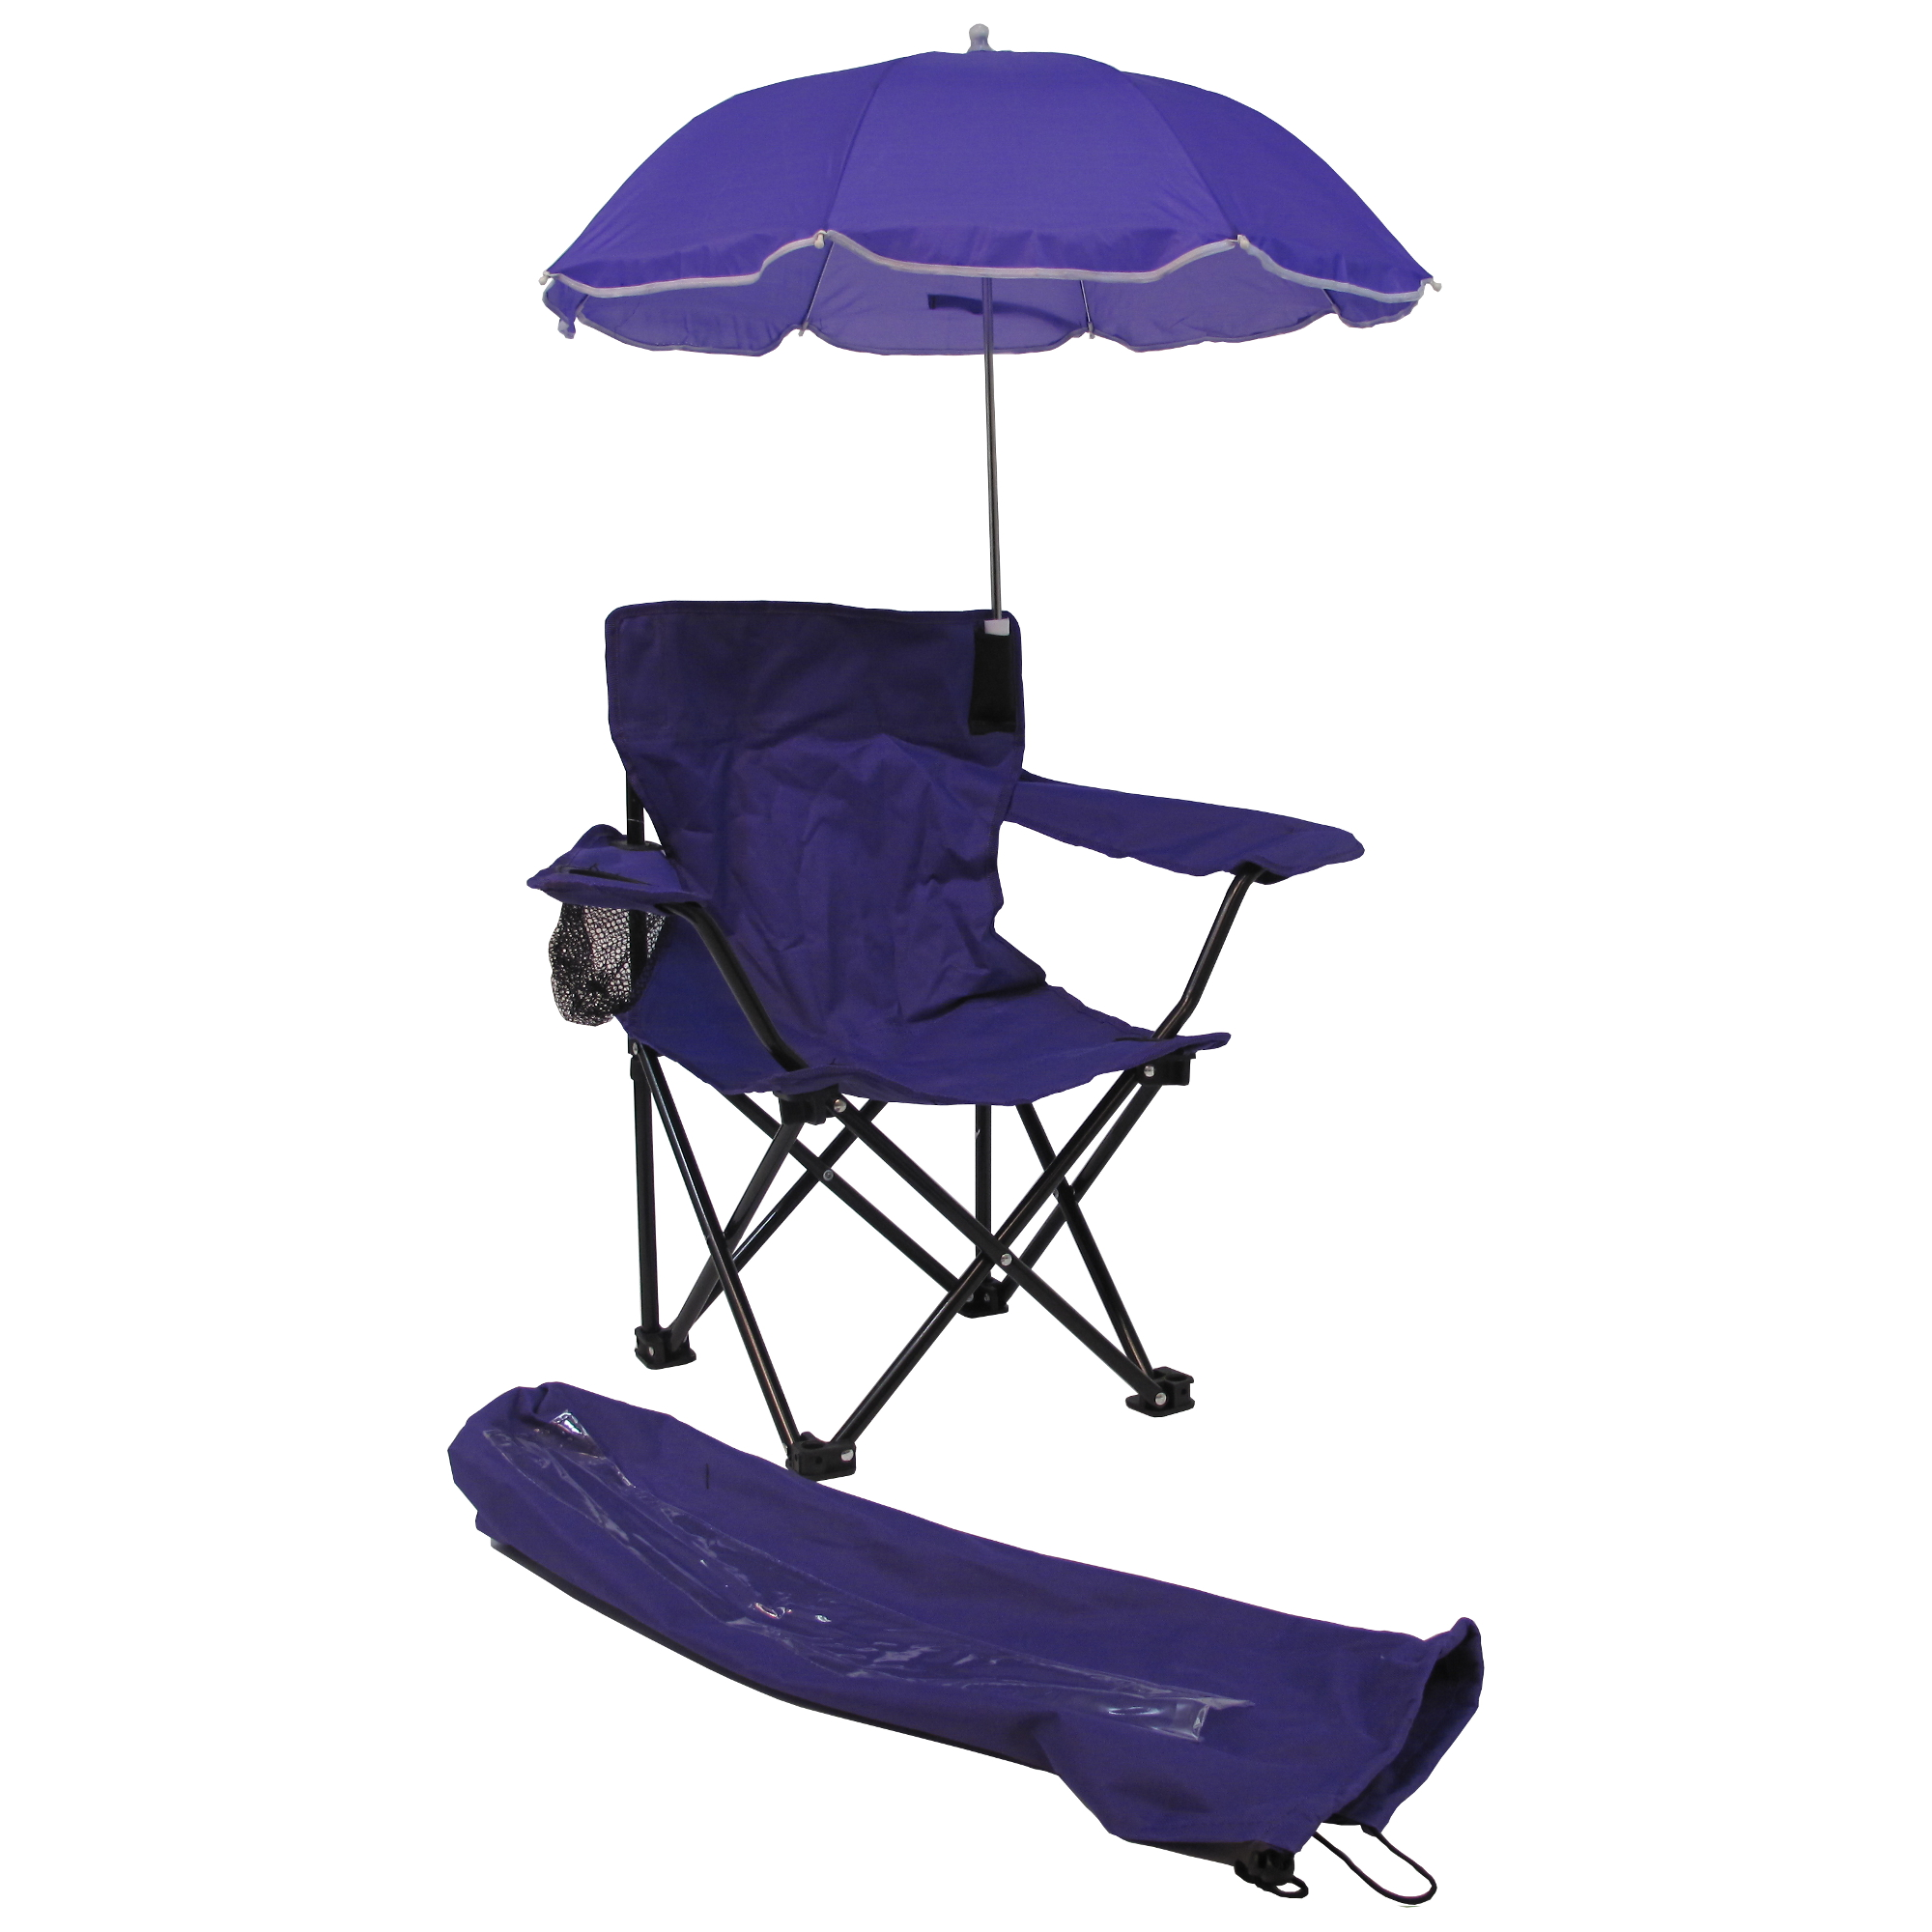 baby camp chair cover hire canberra beach kids with umbrella walmart com